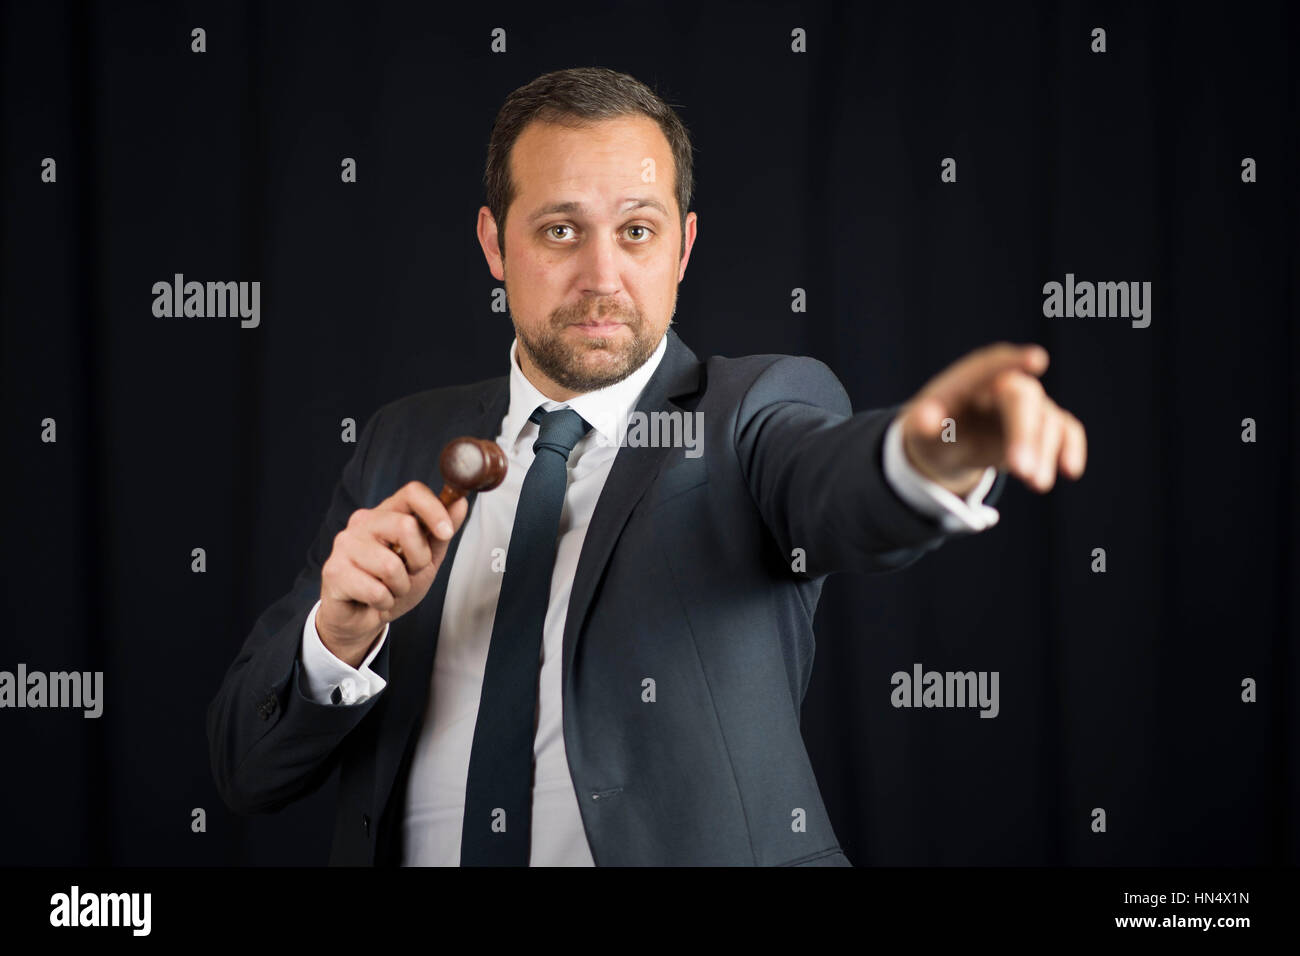 A male auctioneer in action holing a gavel during a live auction. Stock Photo